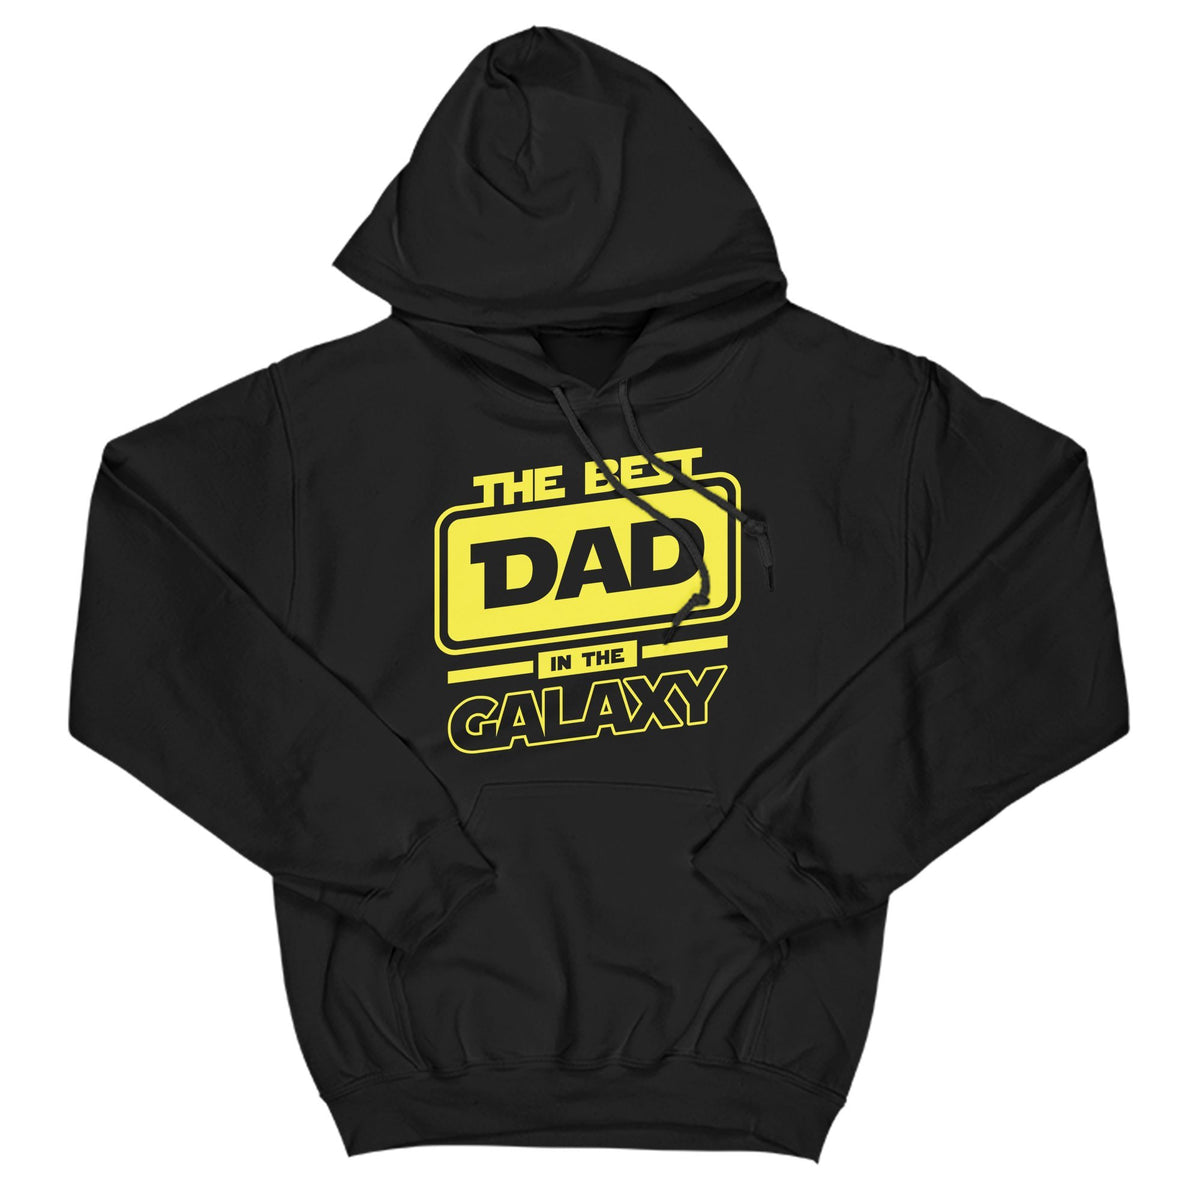 Best Dad In The Galaxy Primate Novelty Hoodie Adults: S